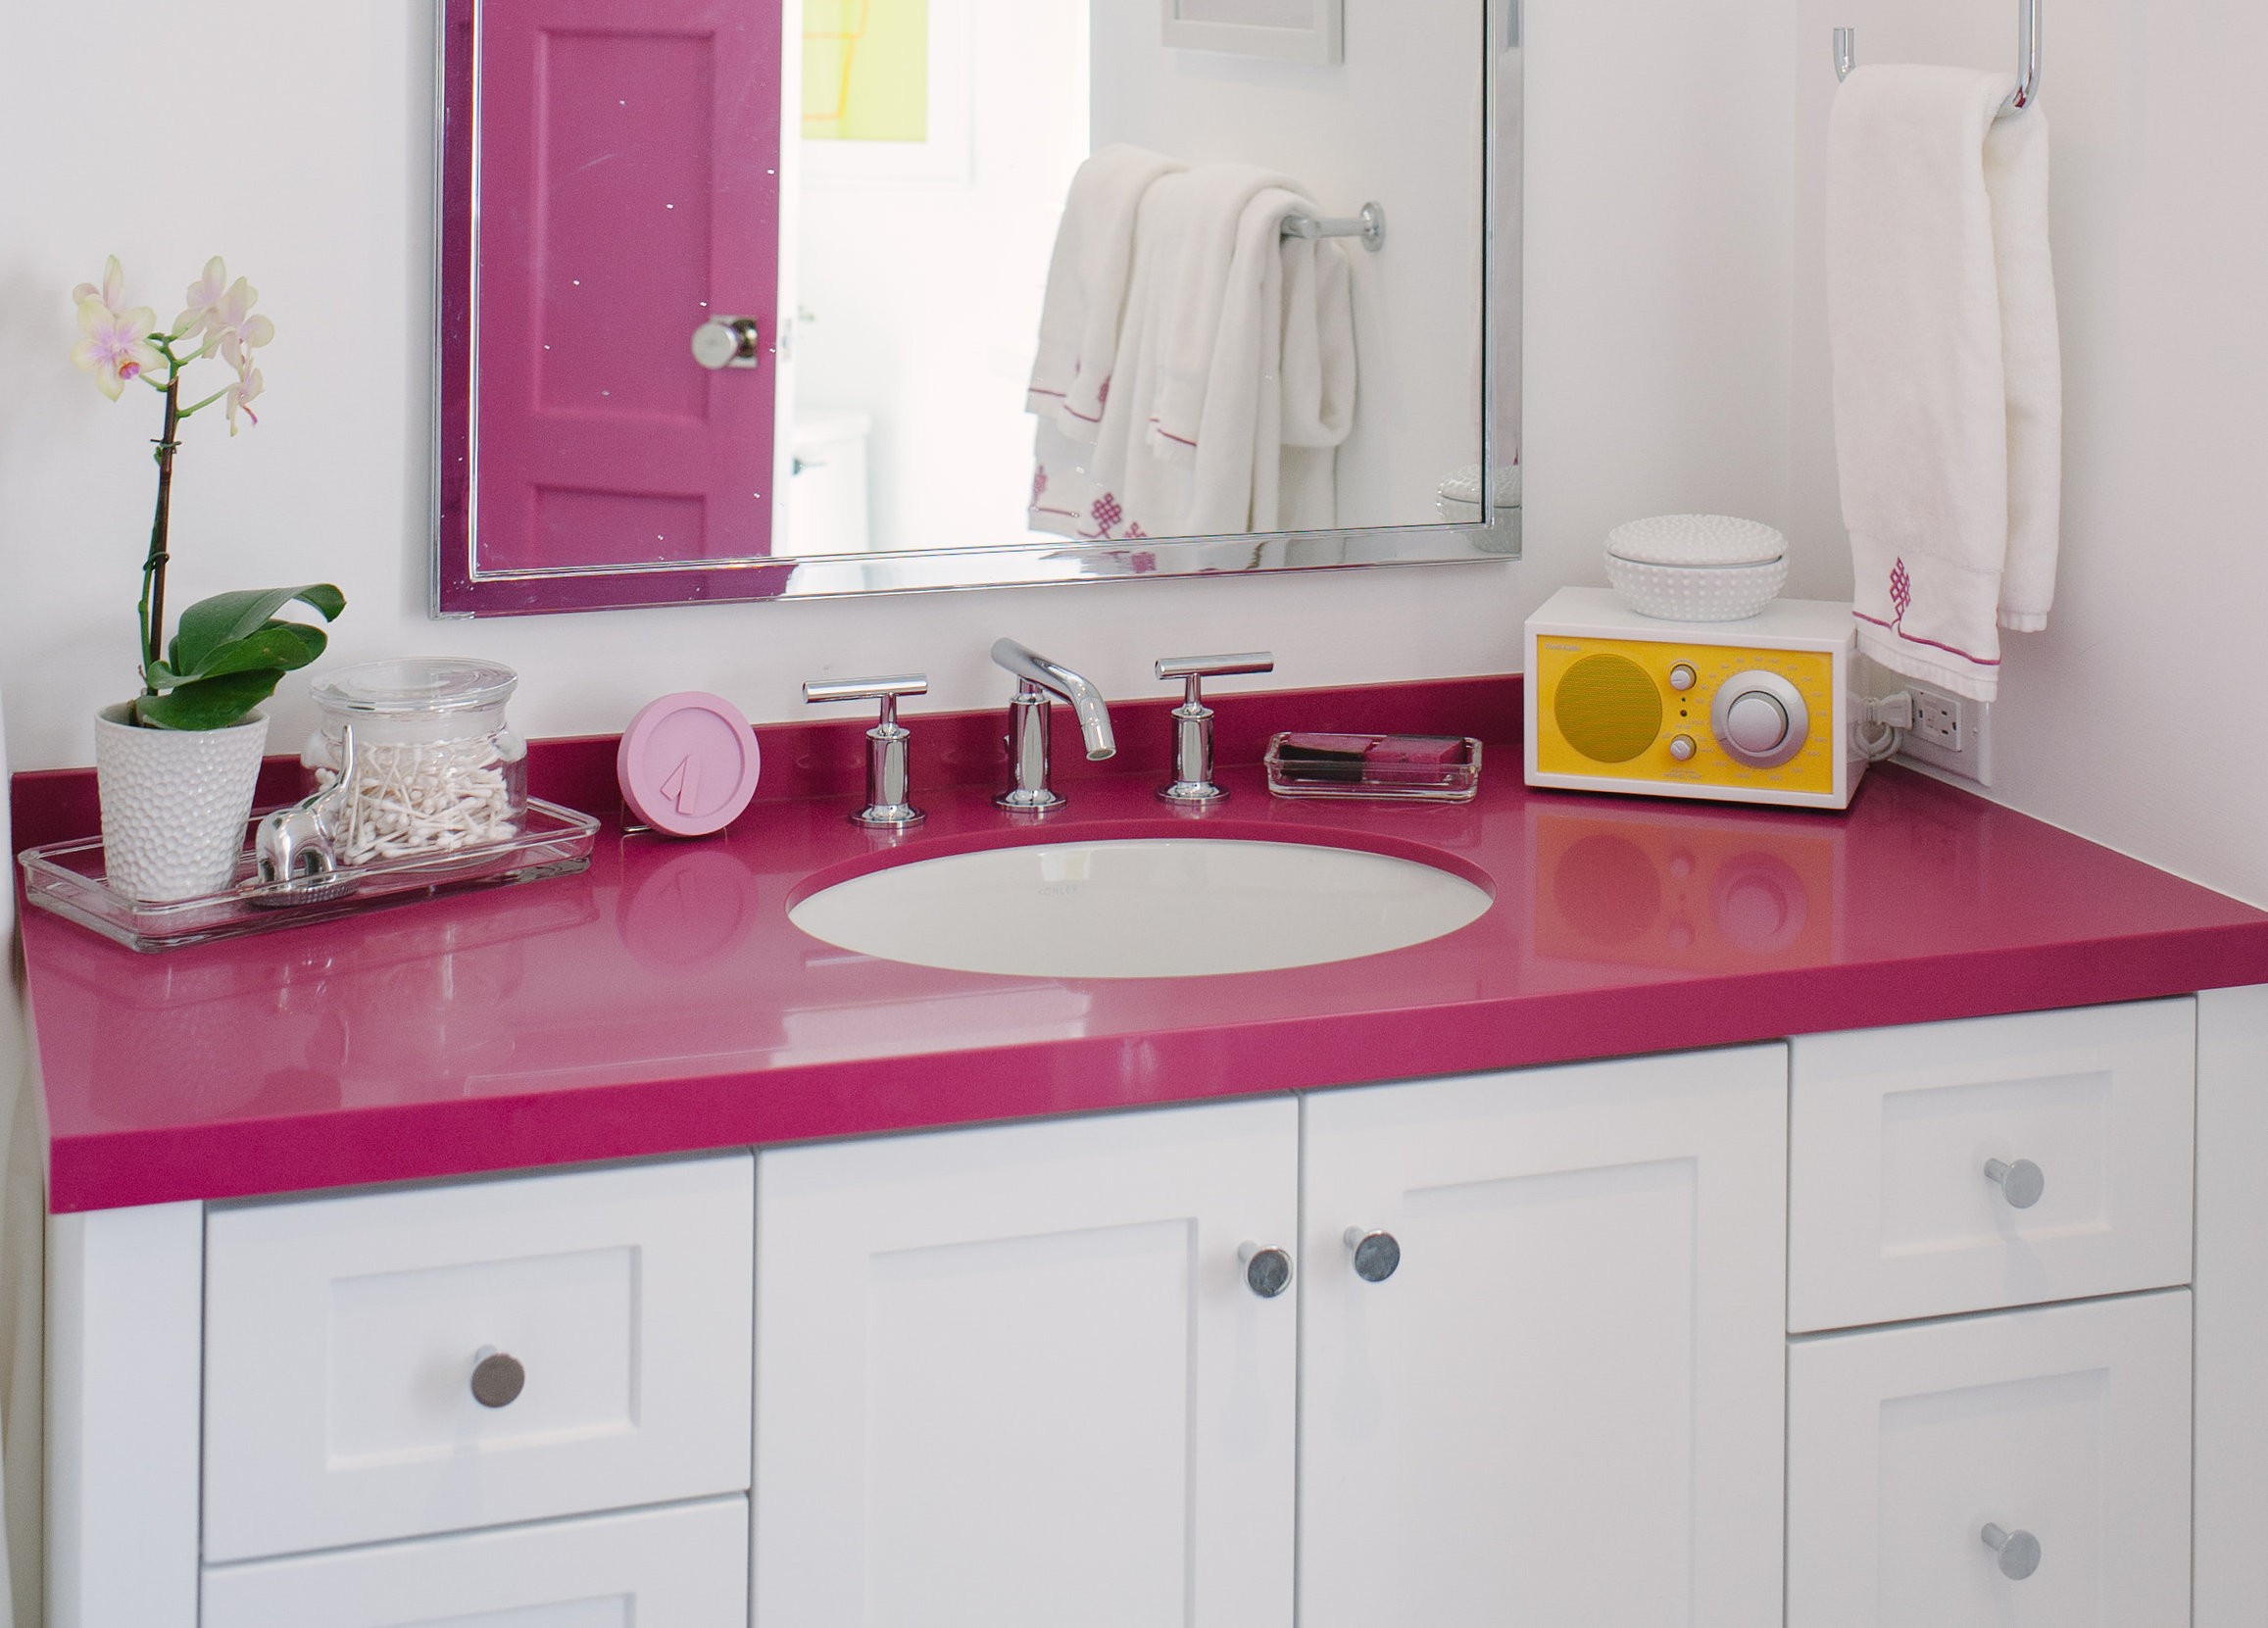 Purist faucet   Verticyl sink    Lewis chose simple, understated faucets and fixtures to complement the bright color in Harper's bathroom. She chose yellow as a third pop of color because of its cheerful, positive energy.